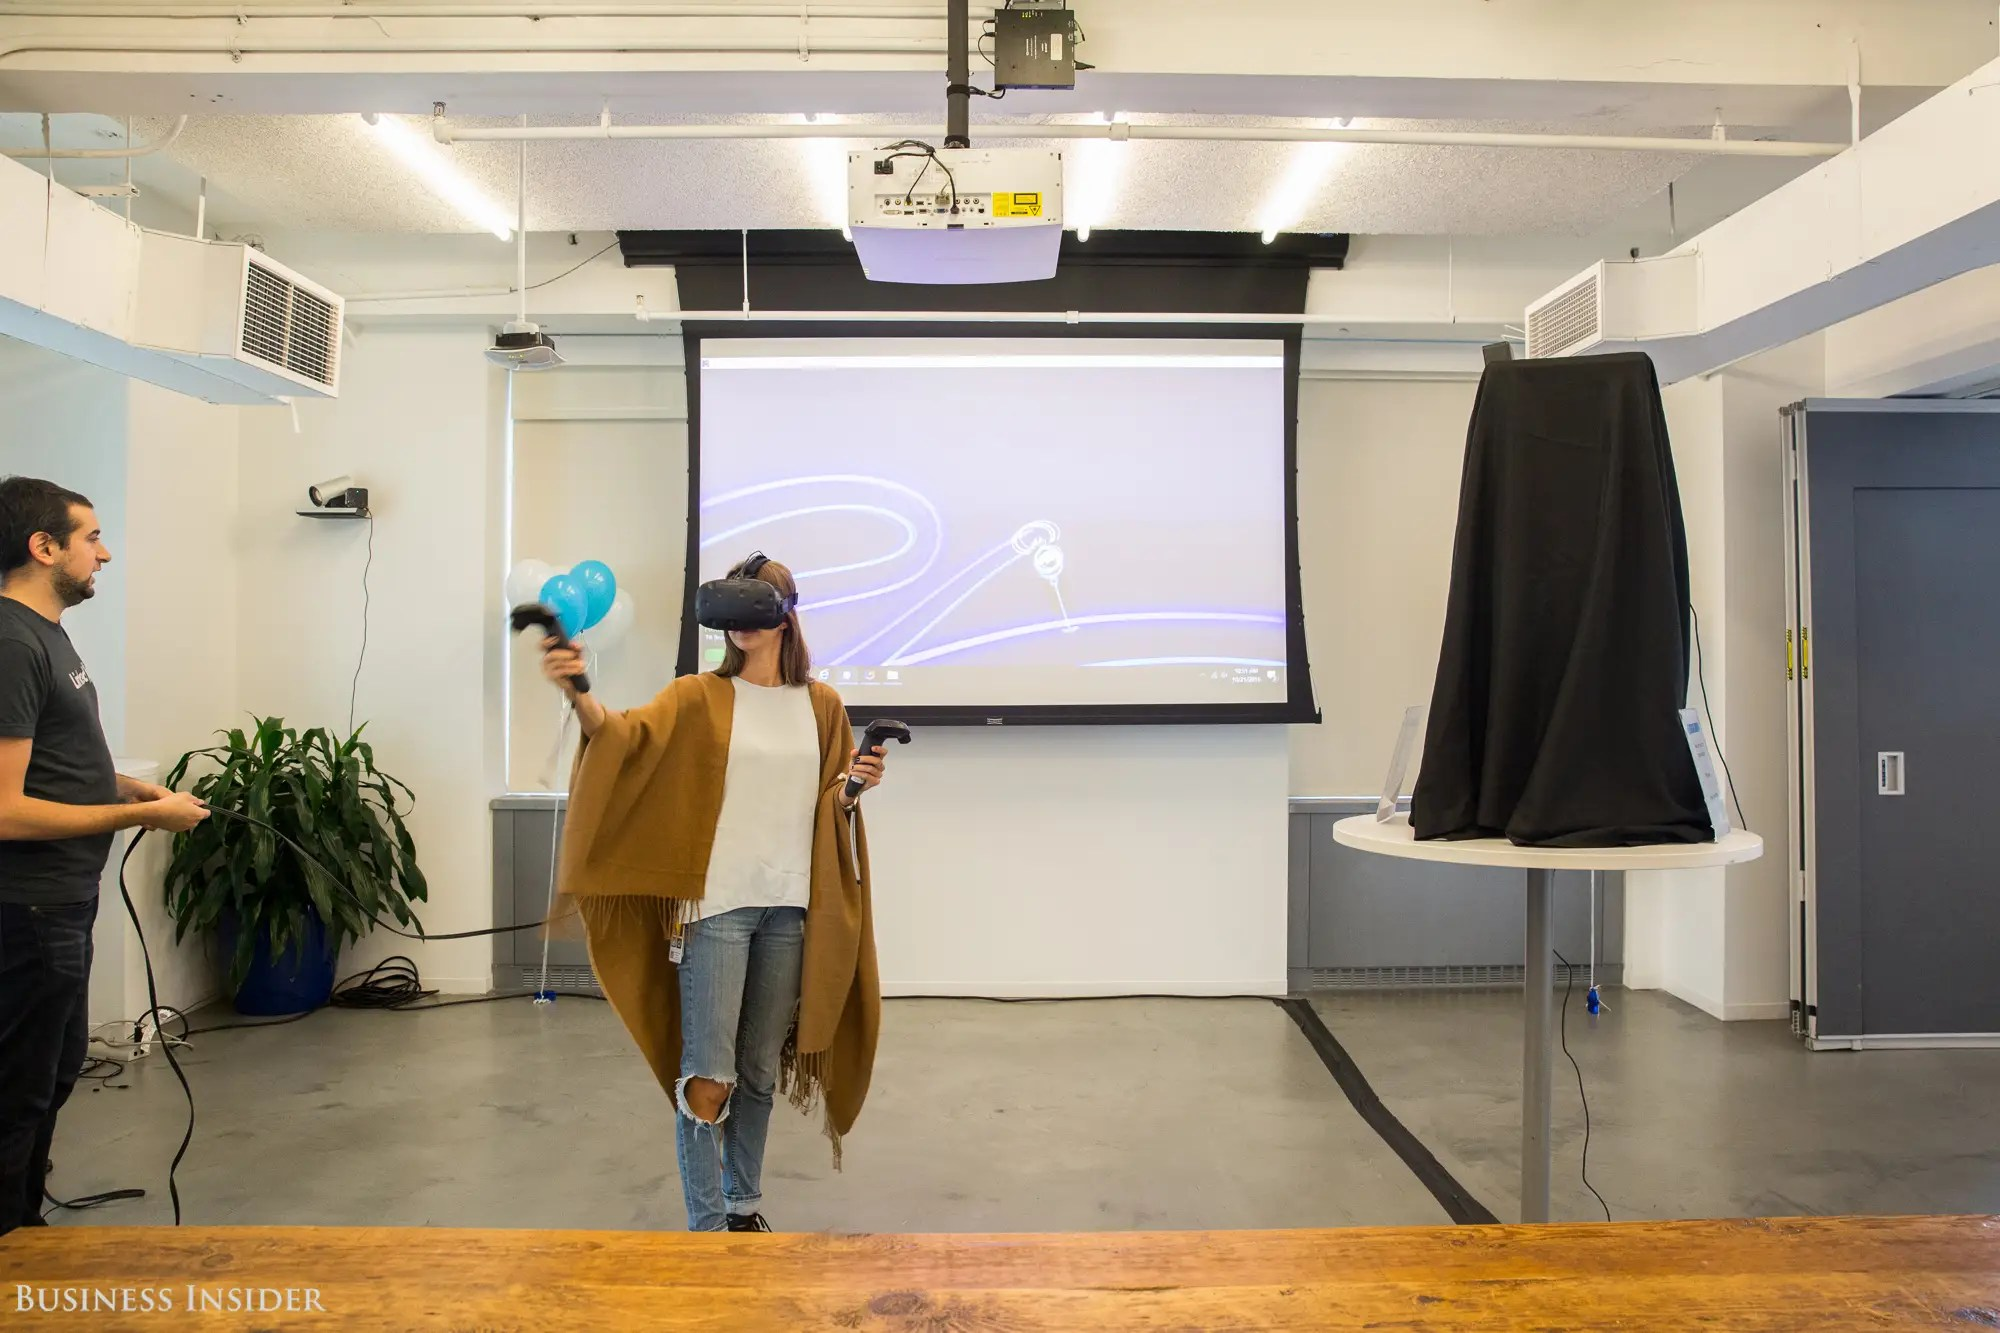 For the event, LinkedIn brought in a Tilt Brush headset, which allows users to paint in 3D space.